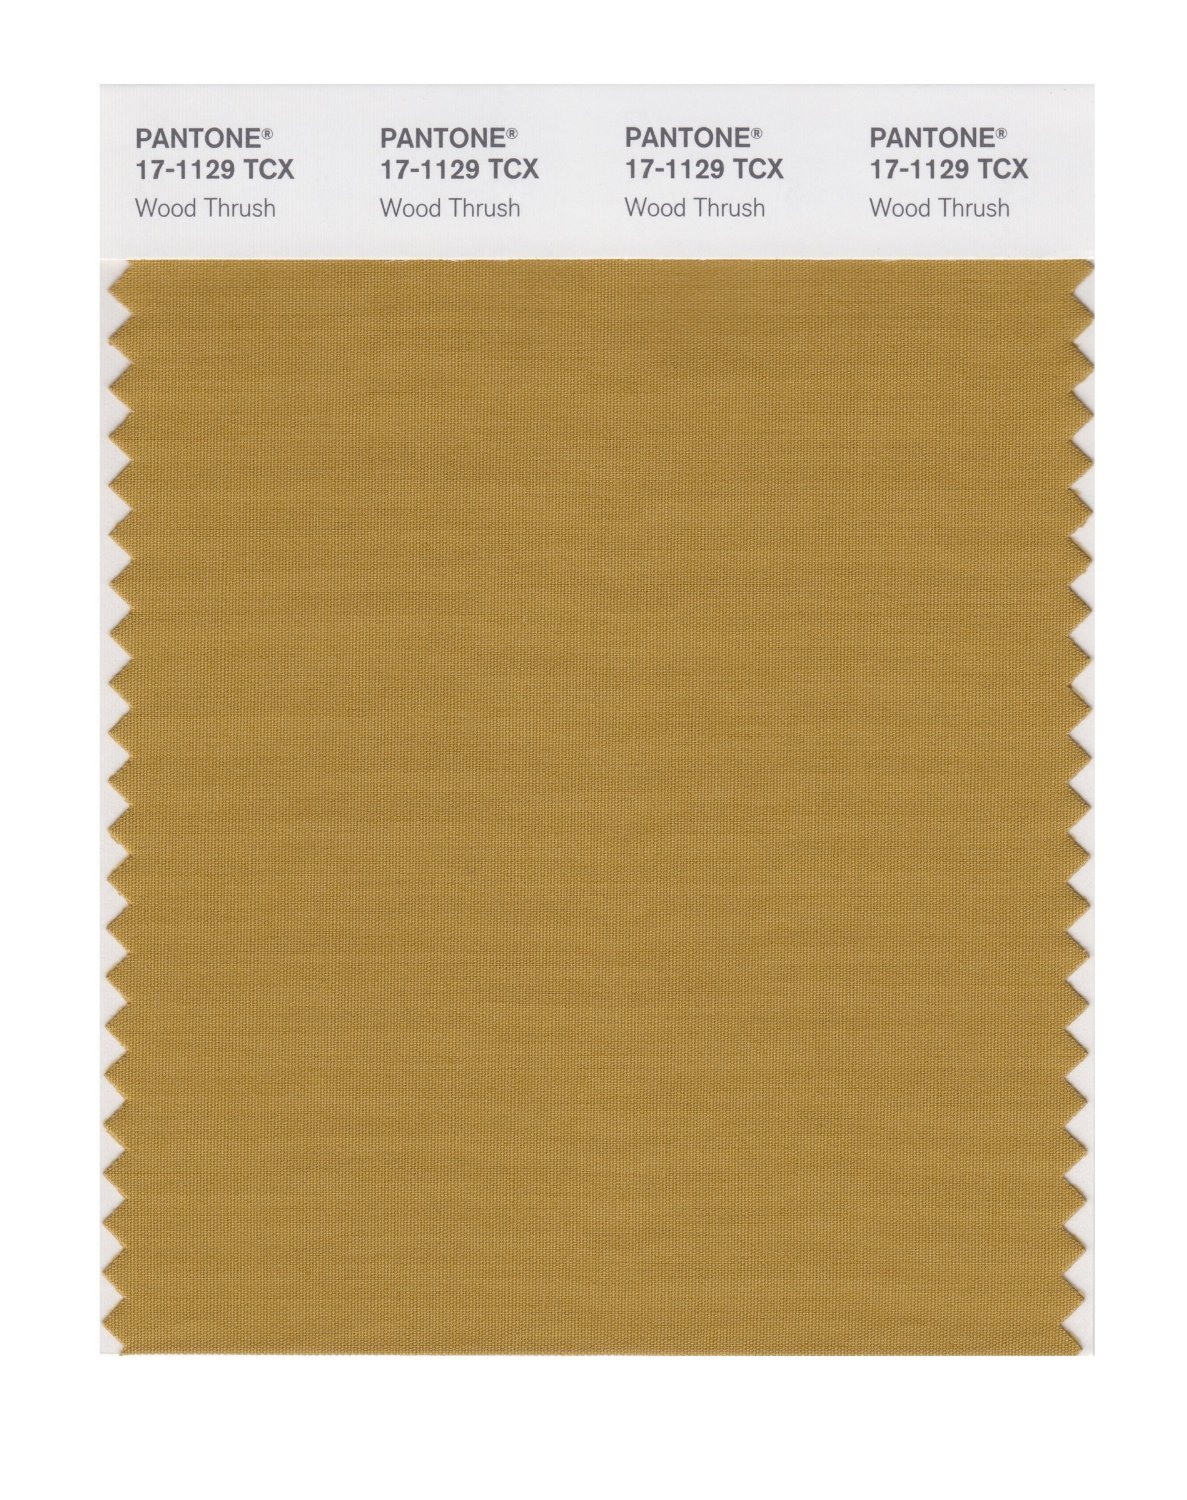 Pantone Smart Swatch 17-1129 Wood Thrush